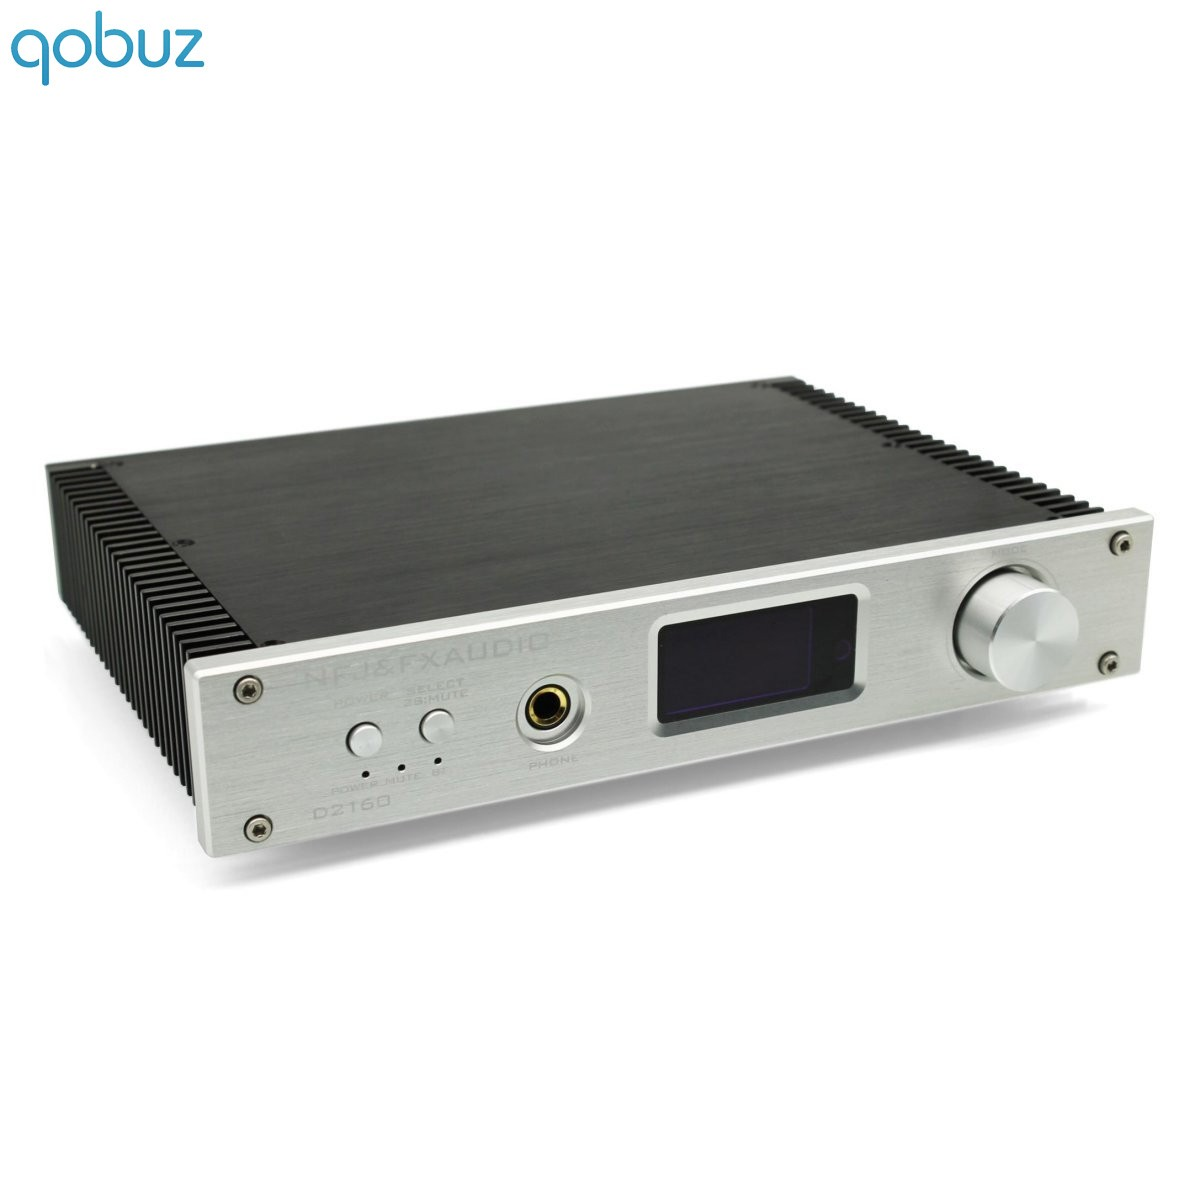 FX-AUDIO D2160 Amplificateur FDA Bluetooth 5 TAS5614 2x125W 4 Ohms Argent